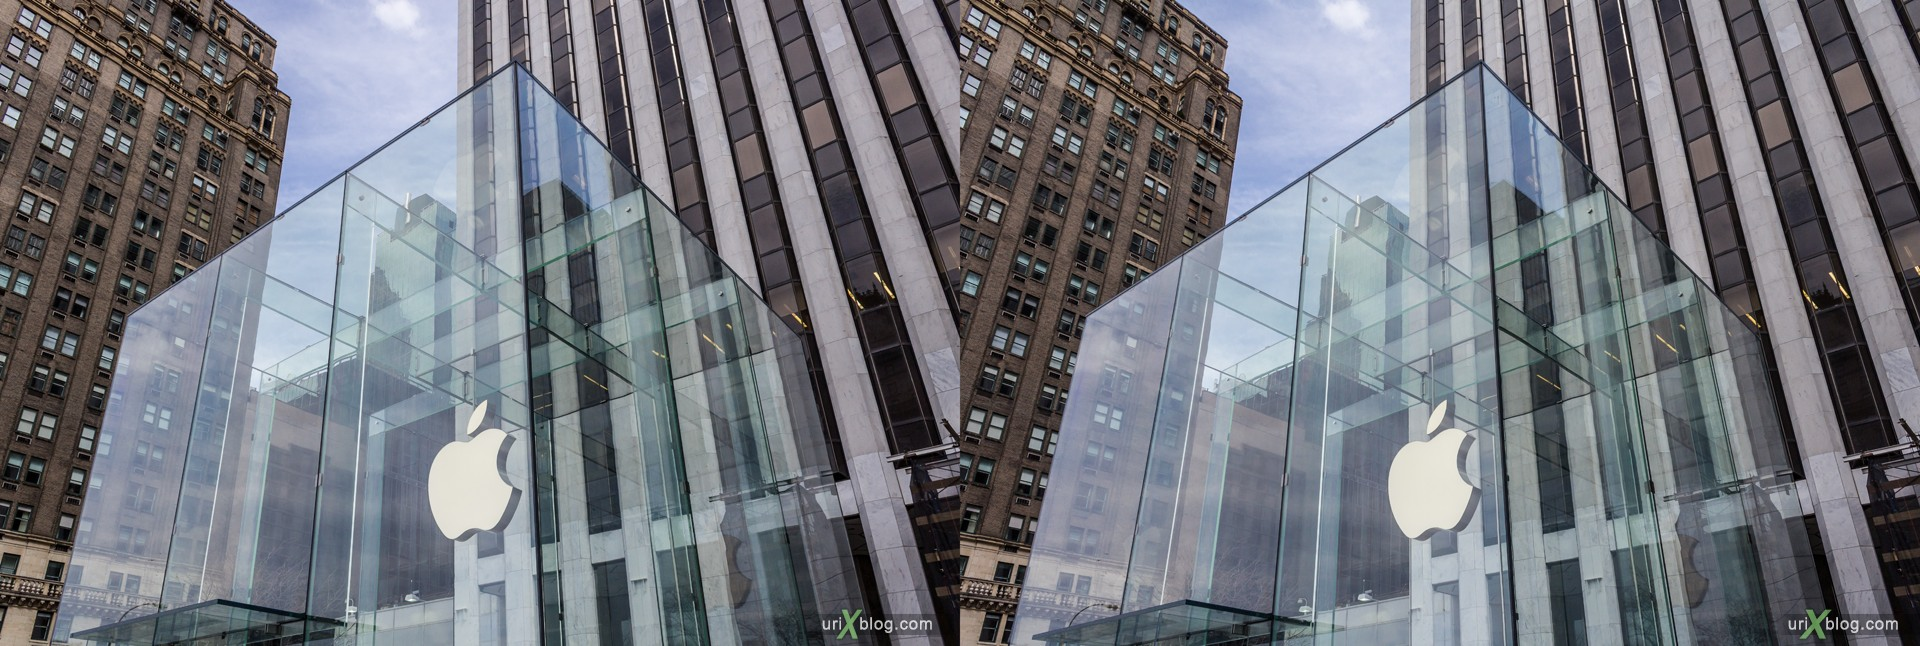 2013, Apple, Apple Store, Fifth Avenue, NYC, New York, USA, 3D, stereo pair, cross-eyed, crossview, cross view stereo pair, stereoscopic